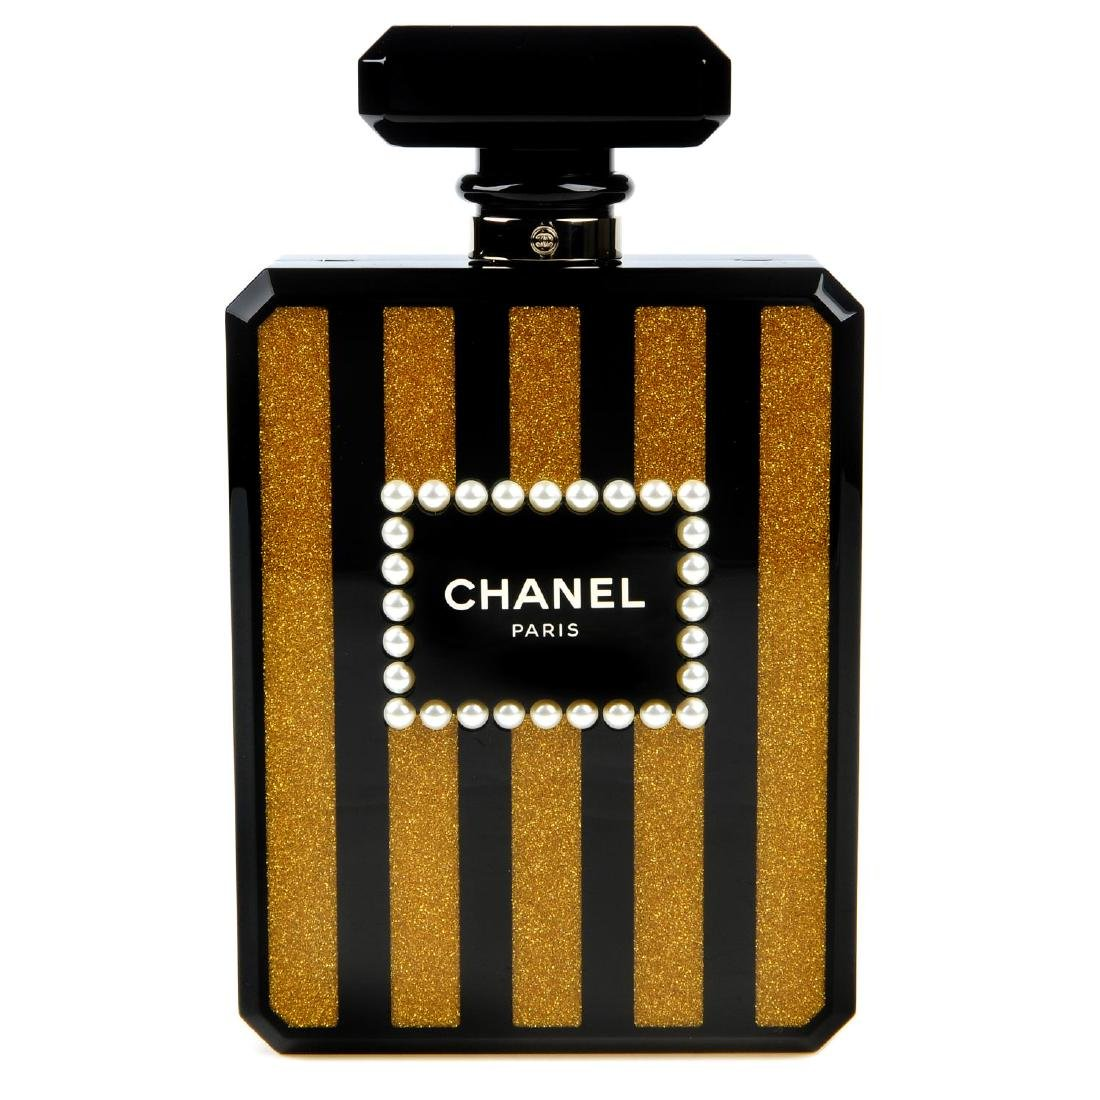 CHANEL - a Perfume Bottle Minaudière handbag. From the